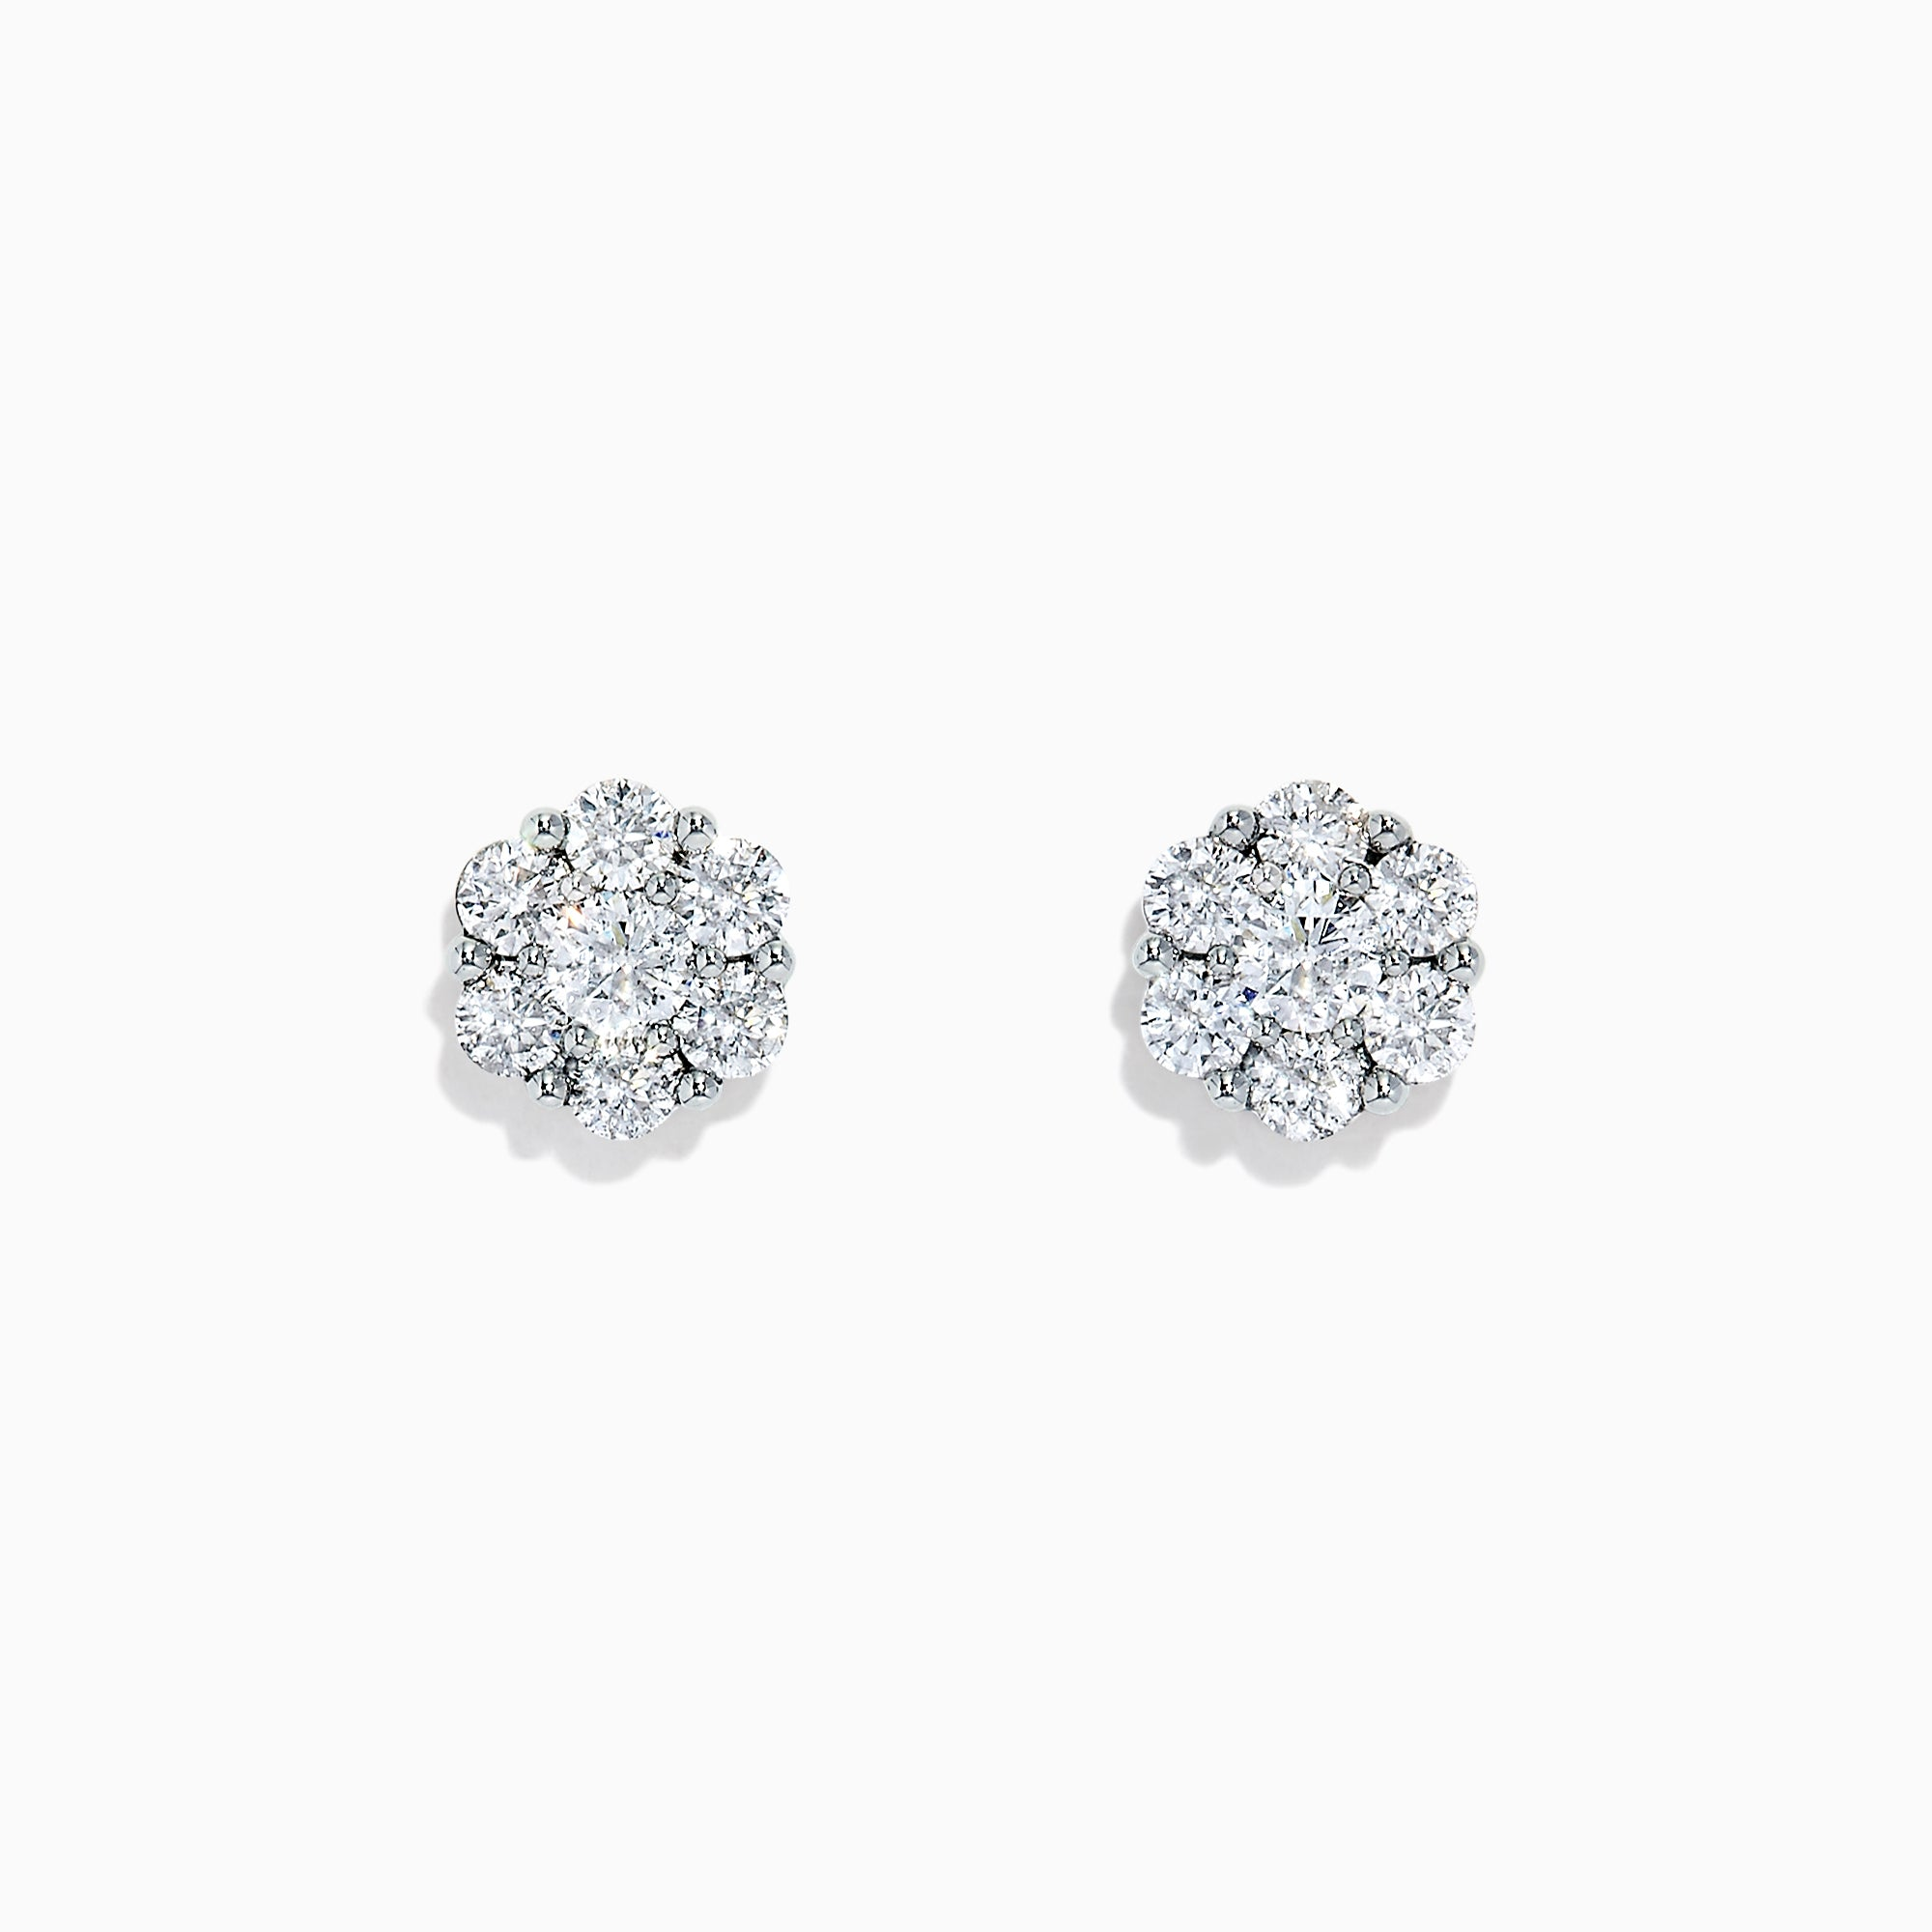 Effy Bouquet 14K White Gold Diamond Cluster Stud Earrings, 0.97 TCW